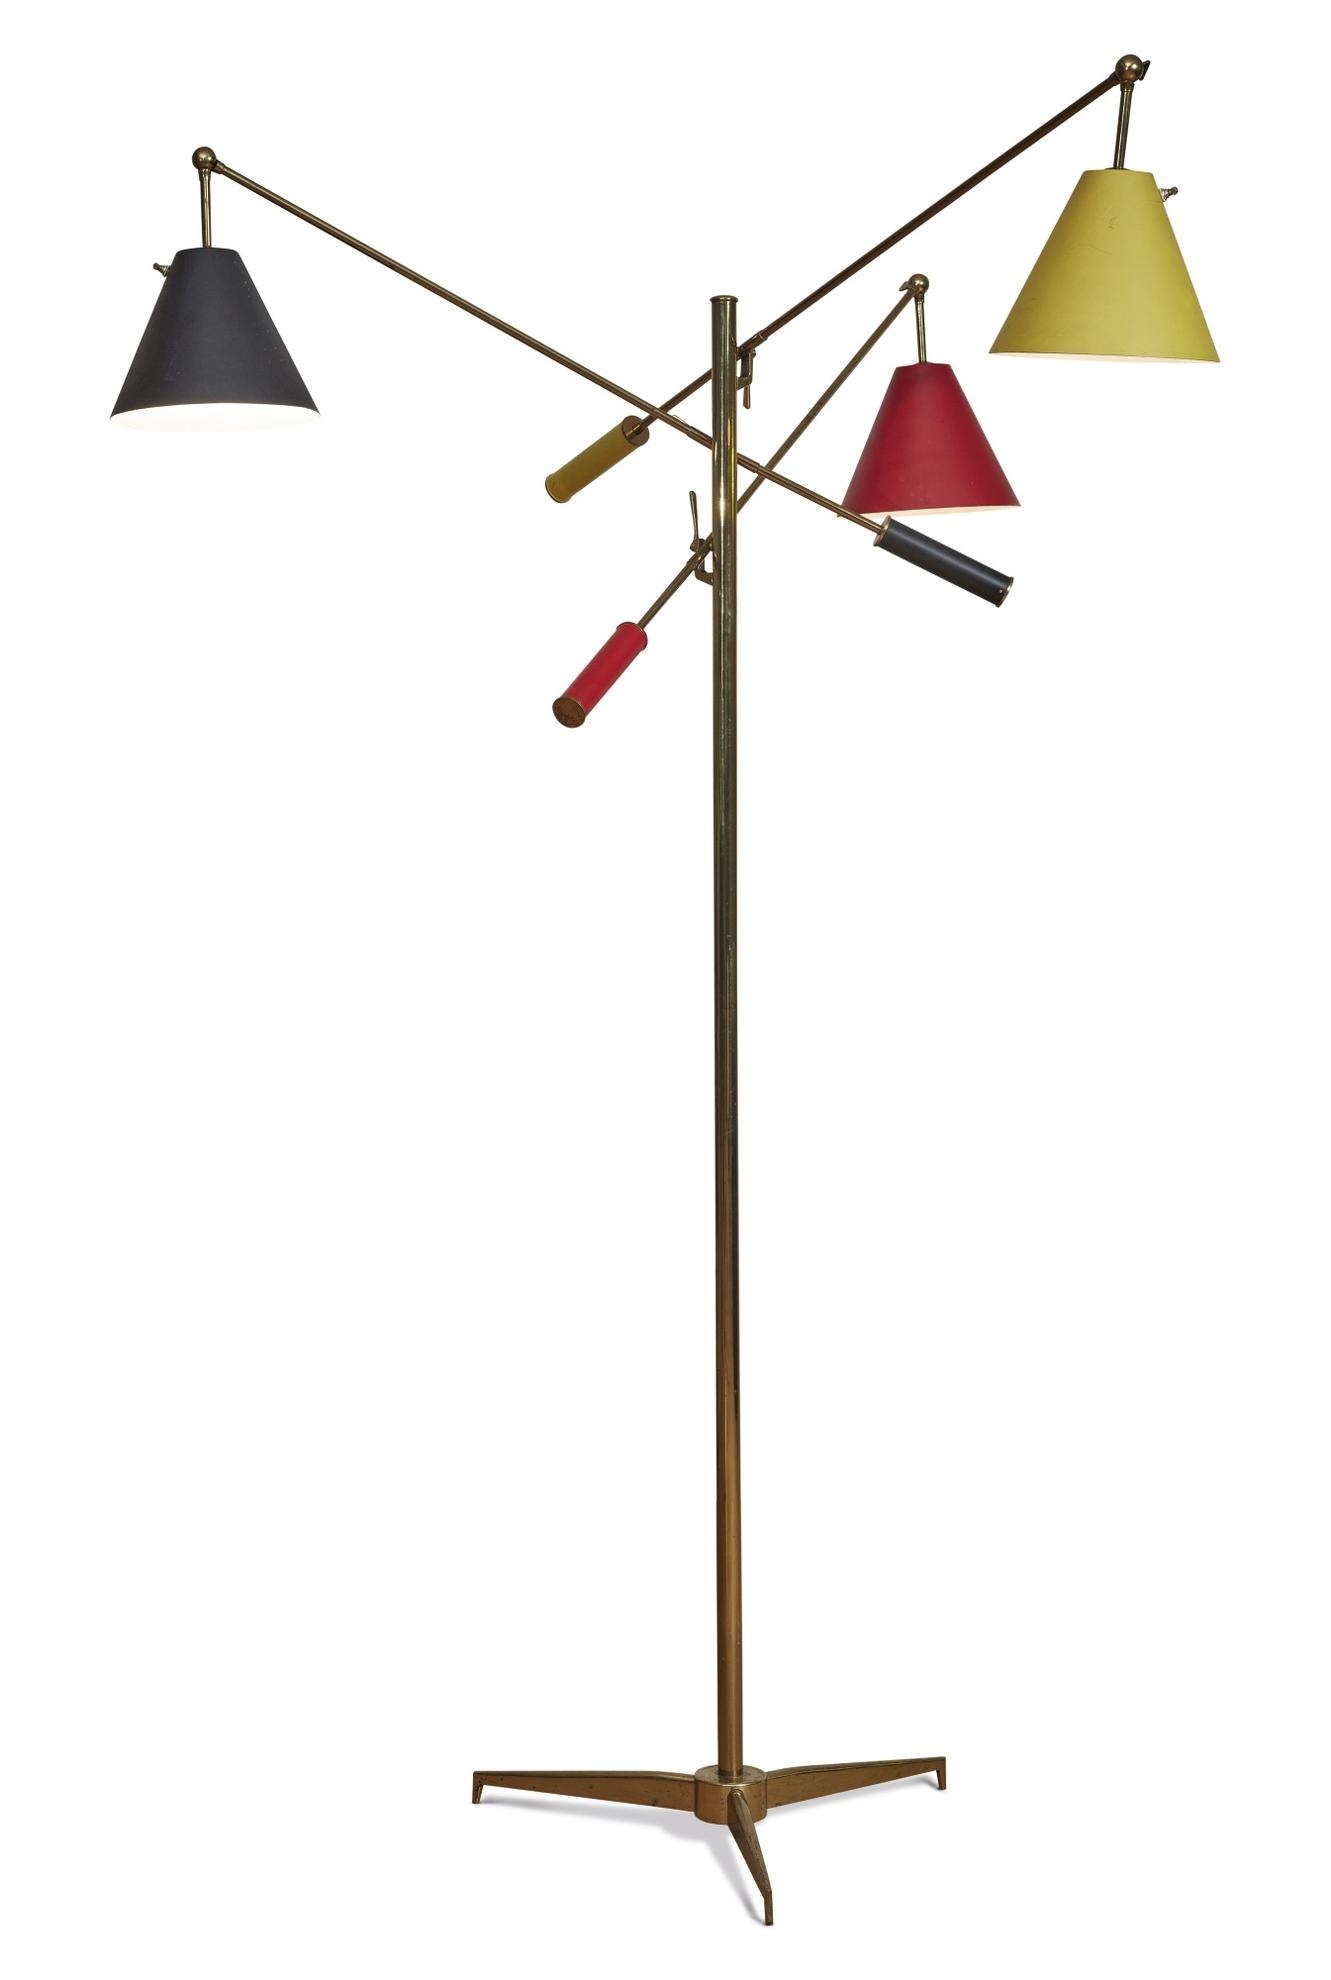 Angelo Lelli - Triennale Floor Lamp, Model No. 12128-1951